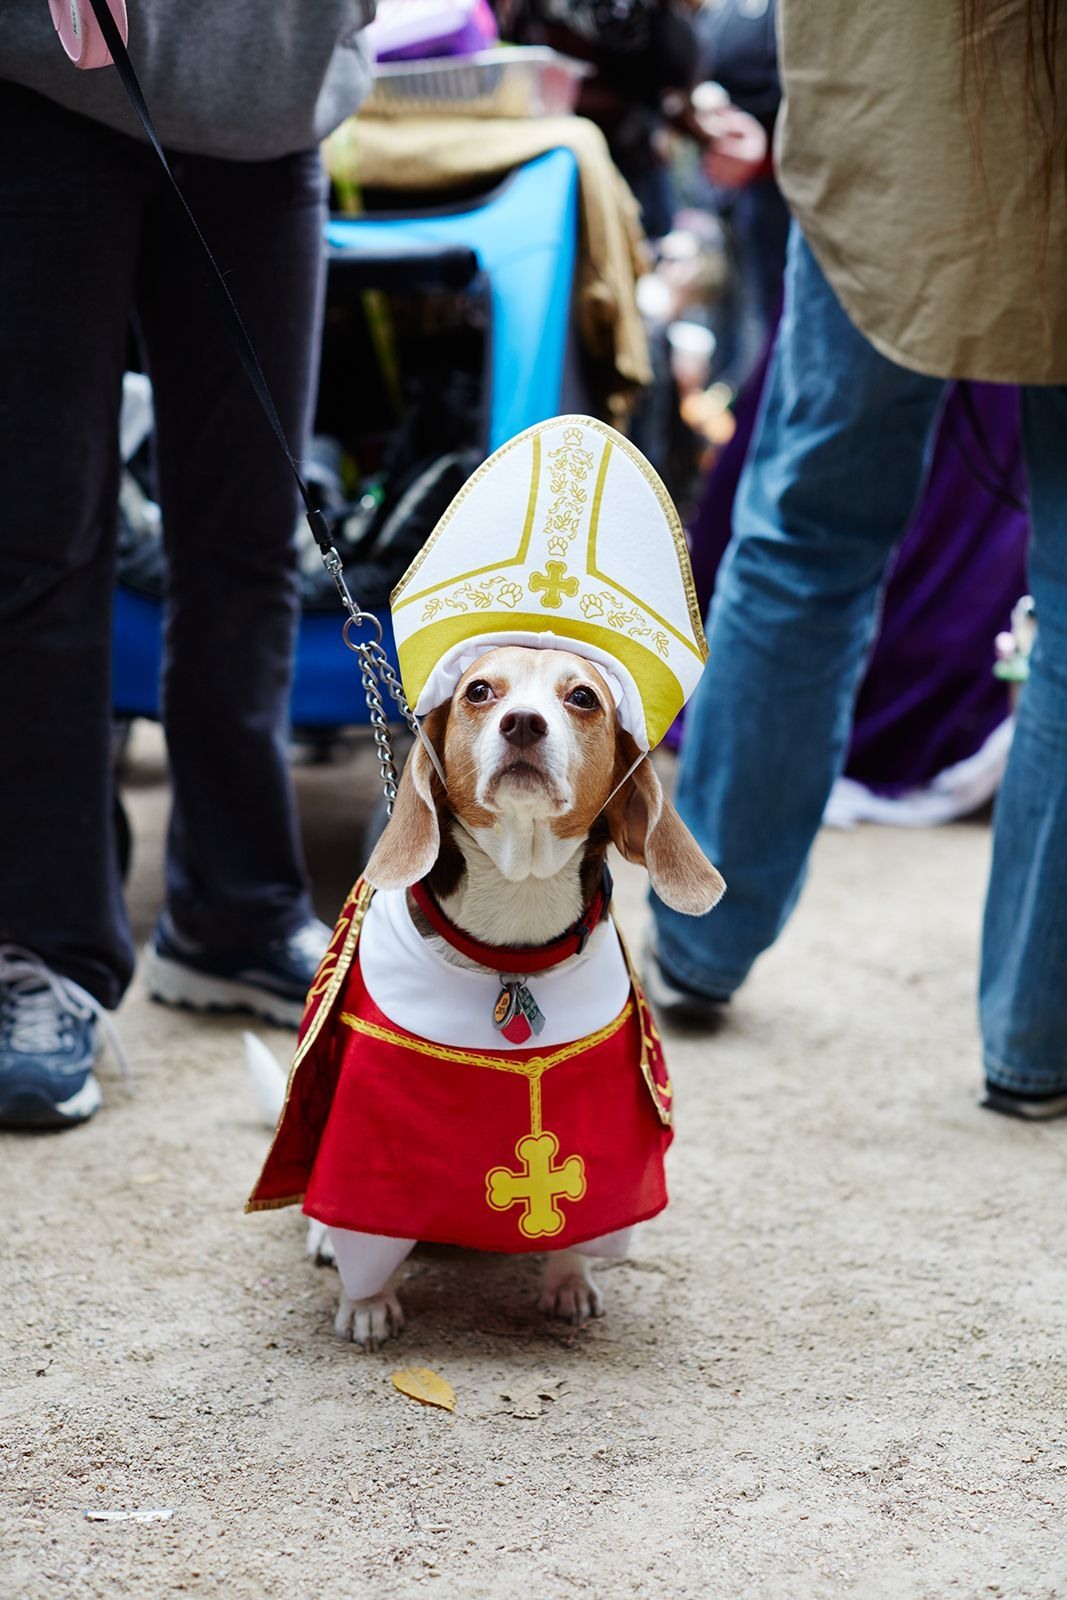 The 40+ Best Dog Costumes EVER #refinery29 //.refinery29.com/2015/10/96371/new-york-dog-parade-pictures#slide-20 Doing the Pope proud. & The 40+ Best Dog Costumes EVER | Dog Pet costumes and Dog halloween